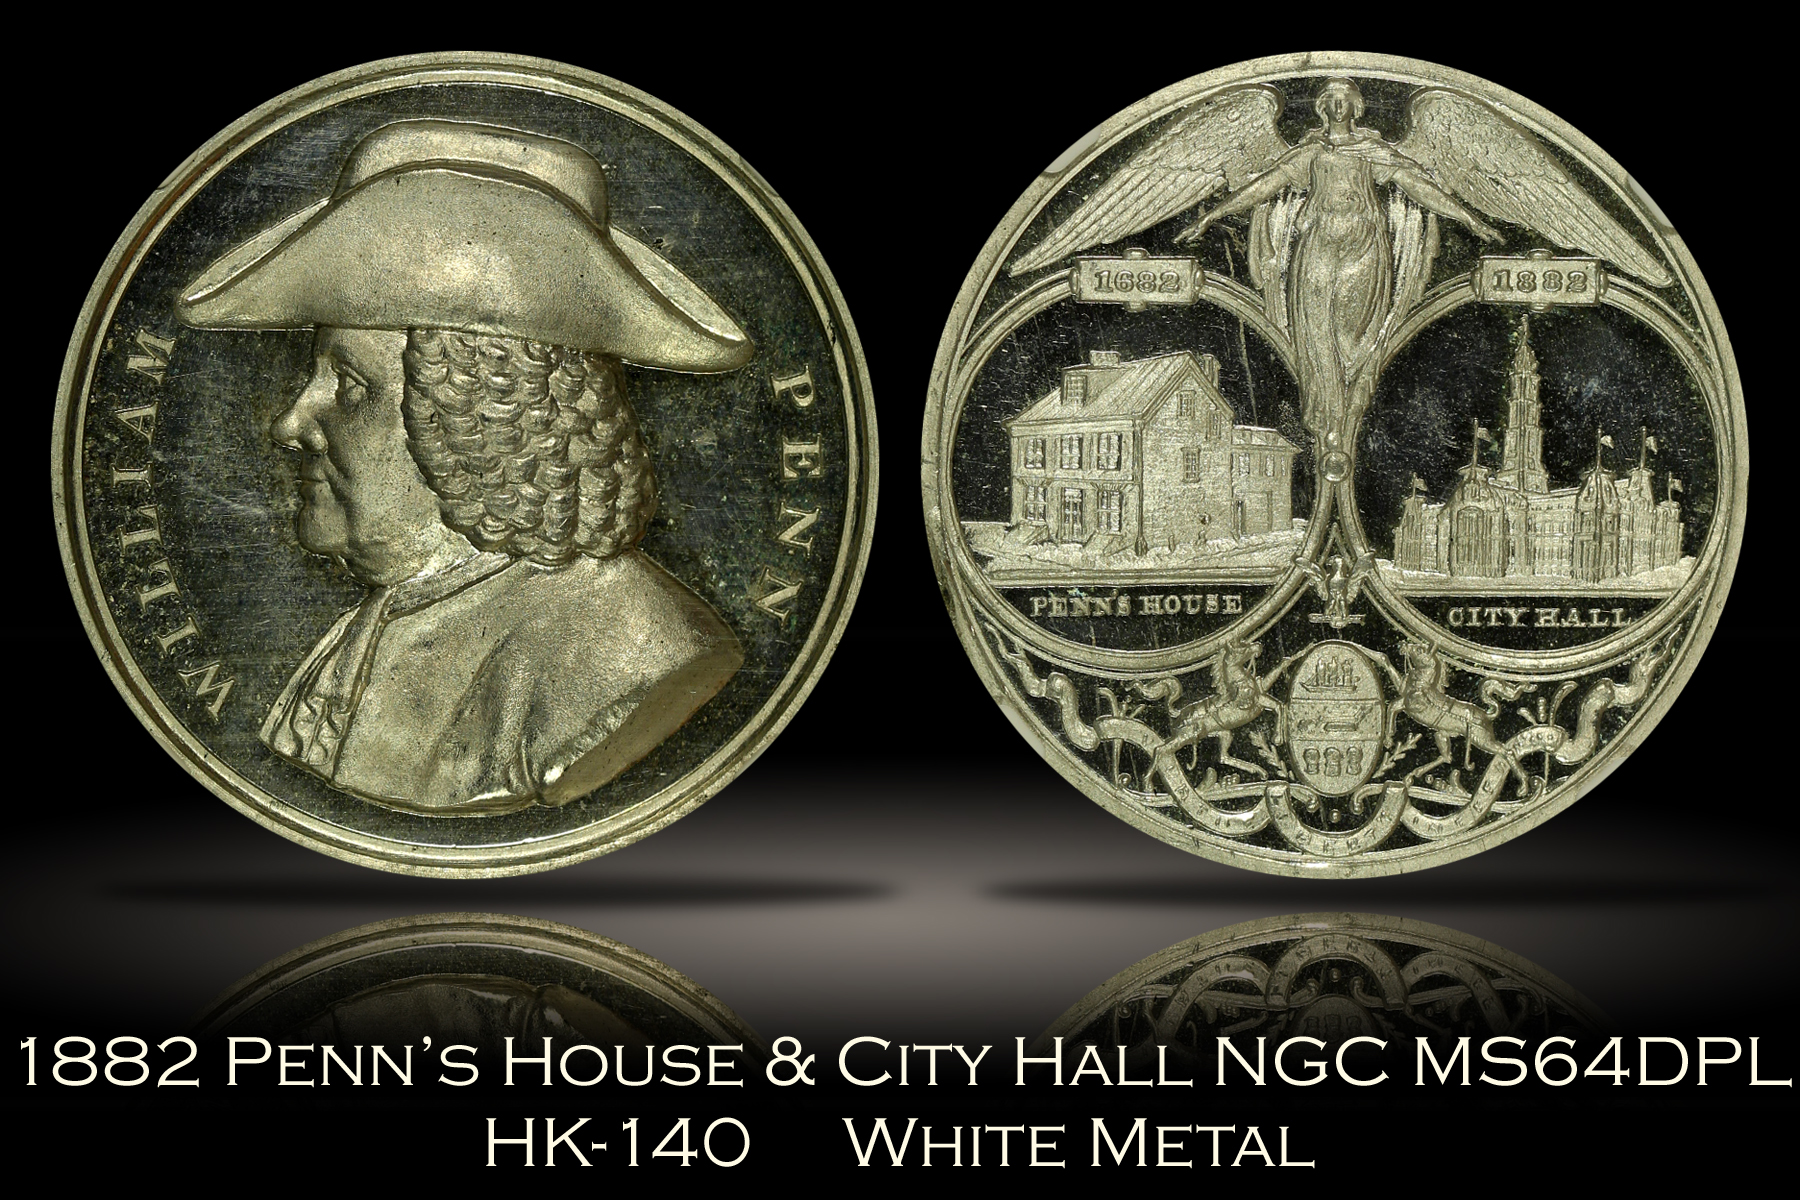 1882 Penn's House & City Hall HK-140 NGC MS64DPL